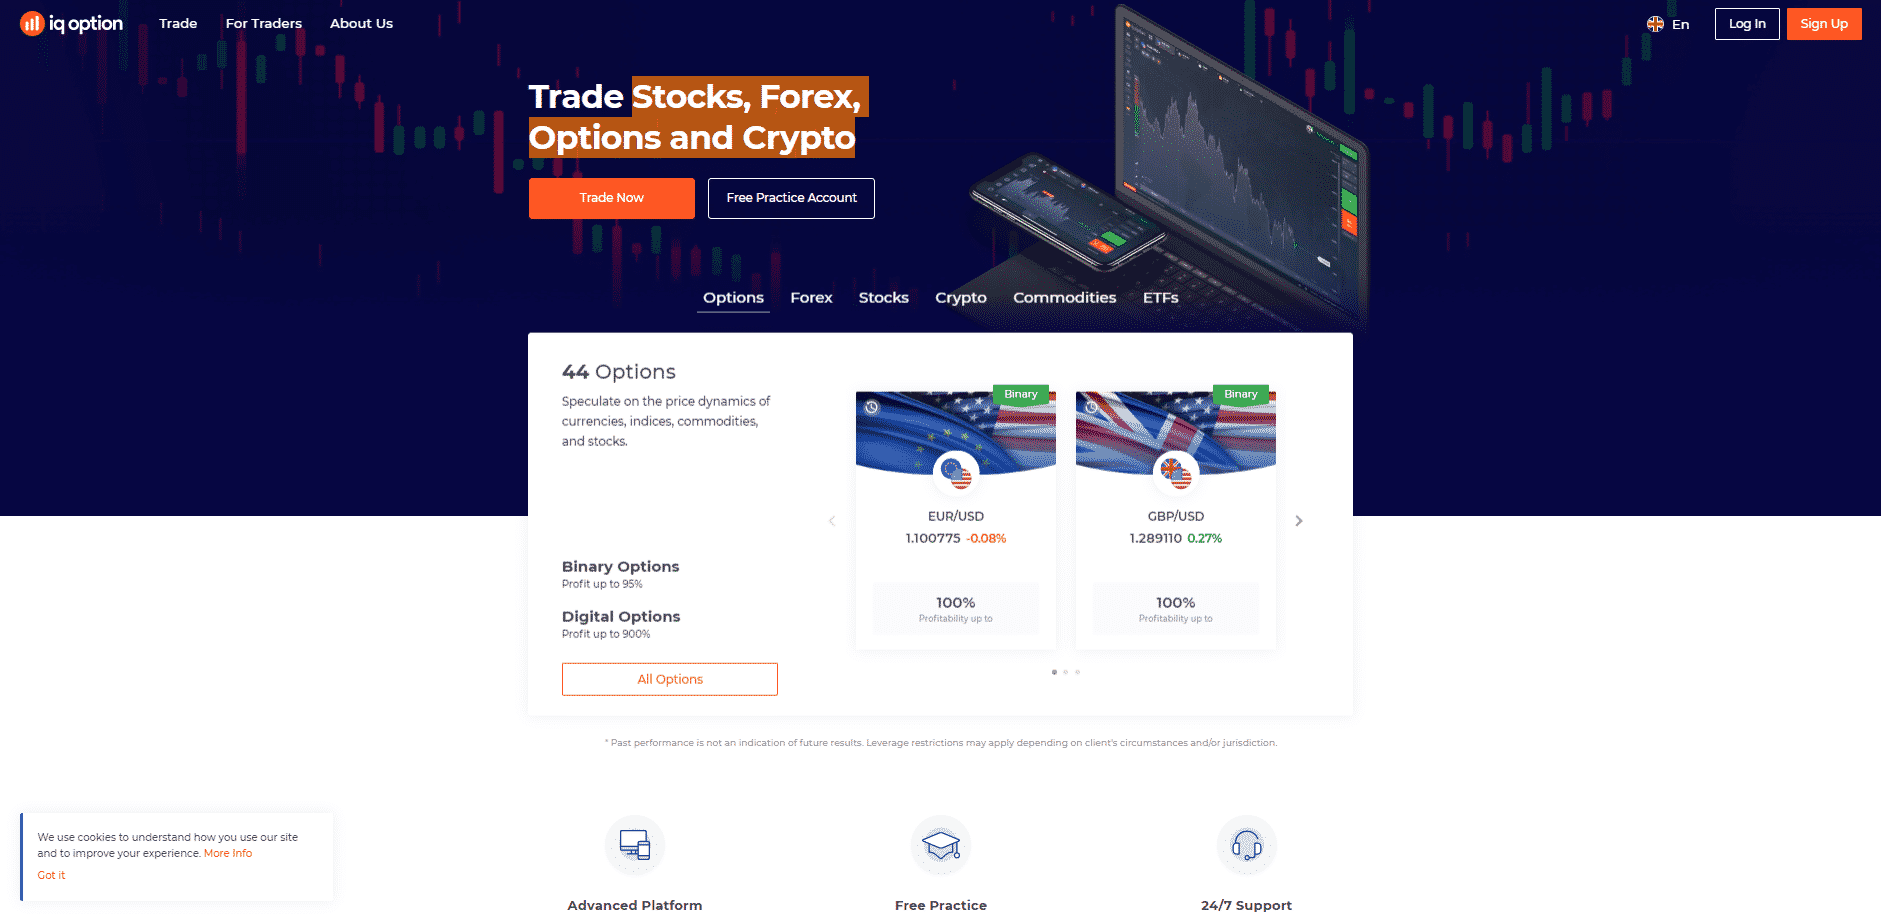 iq option login page